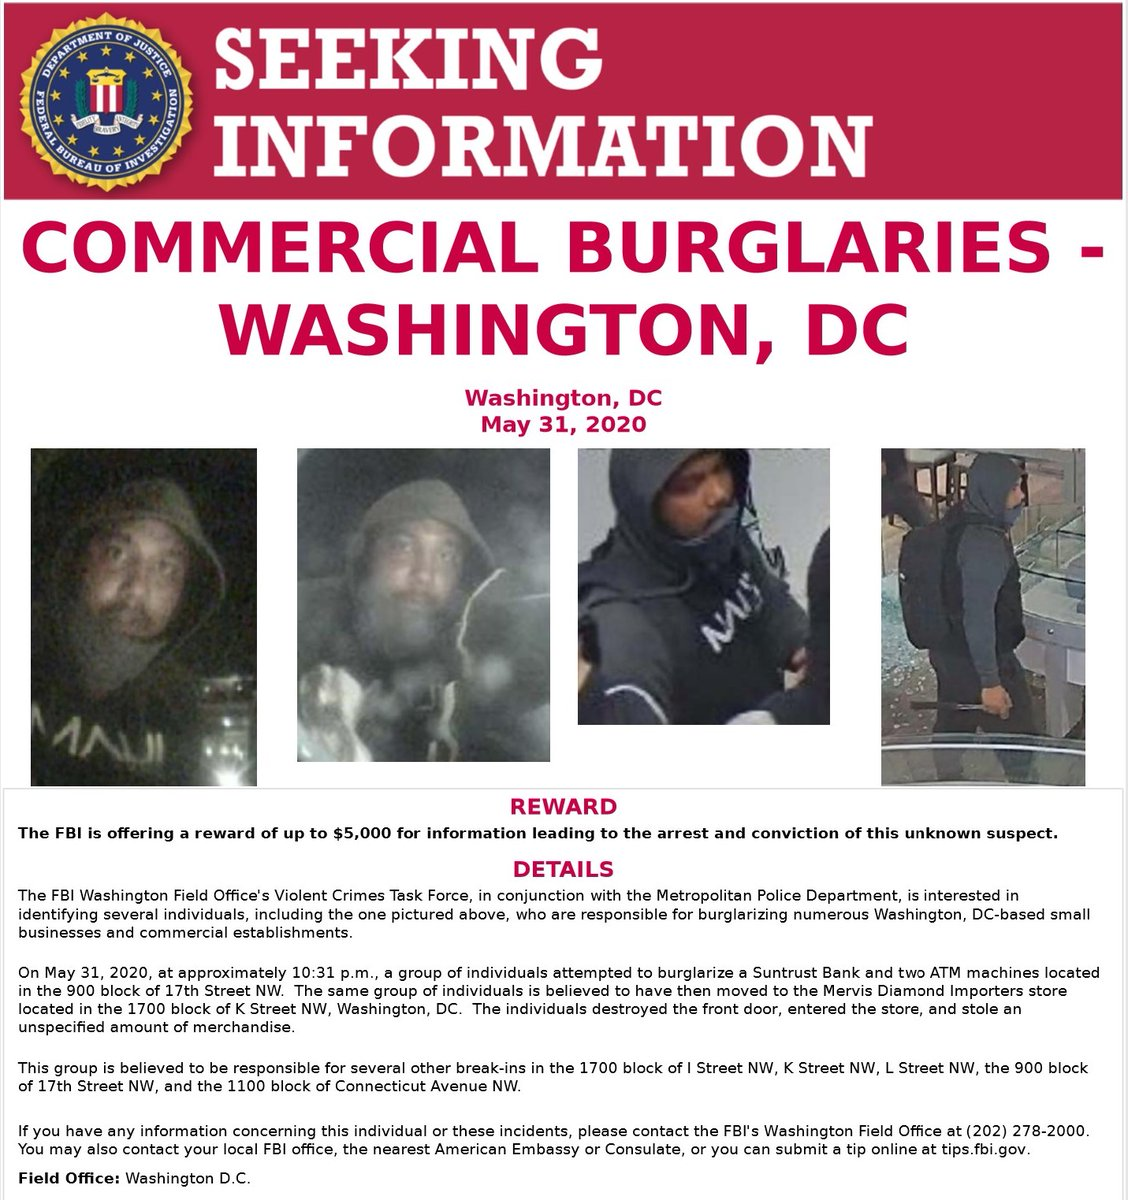 #FBIWFO is offering a reward of up to $5K for info leading to the arrest & conviction of this unknown suspect, responsible for burglarizing Suntrust Bank & 2 ATMs located in 900 block of 17th St NW & Mervis Diamond Importers.